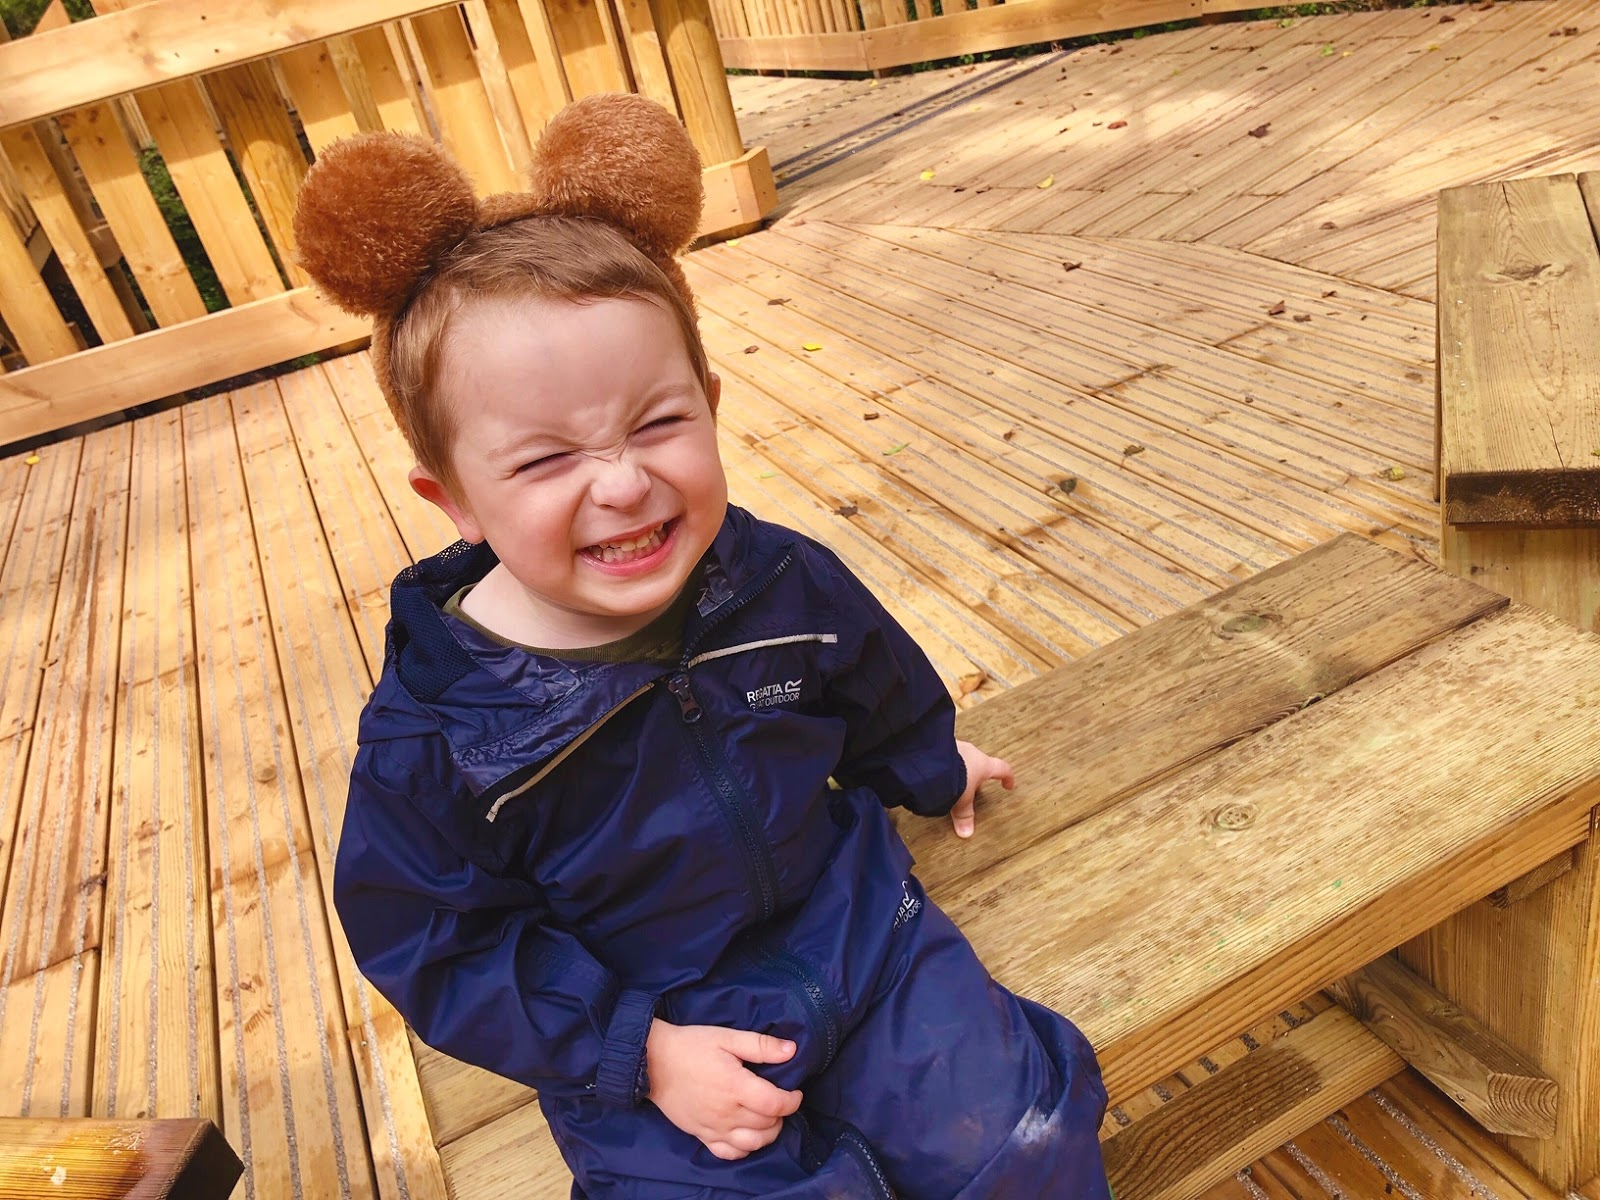 a toddler boy smiling and wearing a puddle suit and bear ears on his head